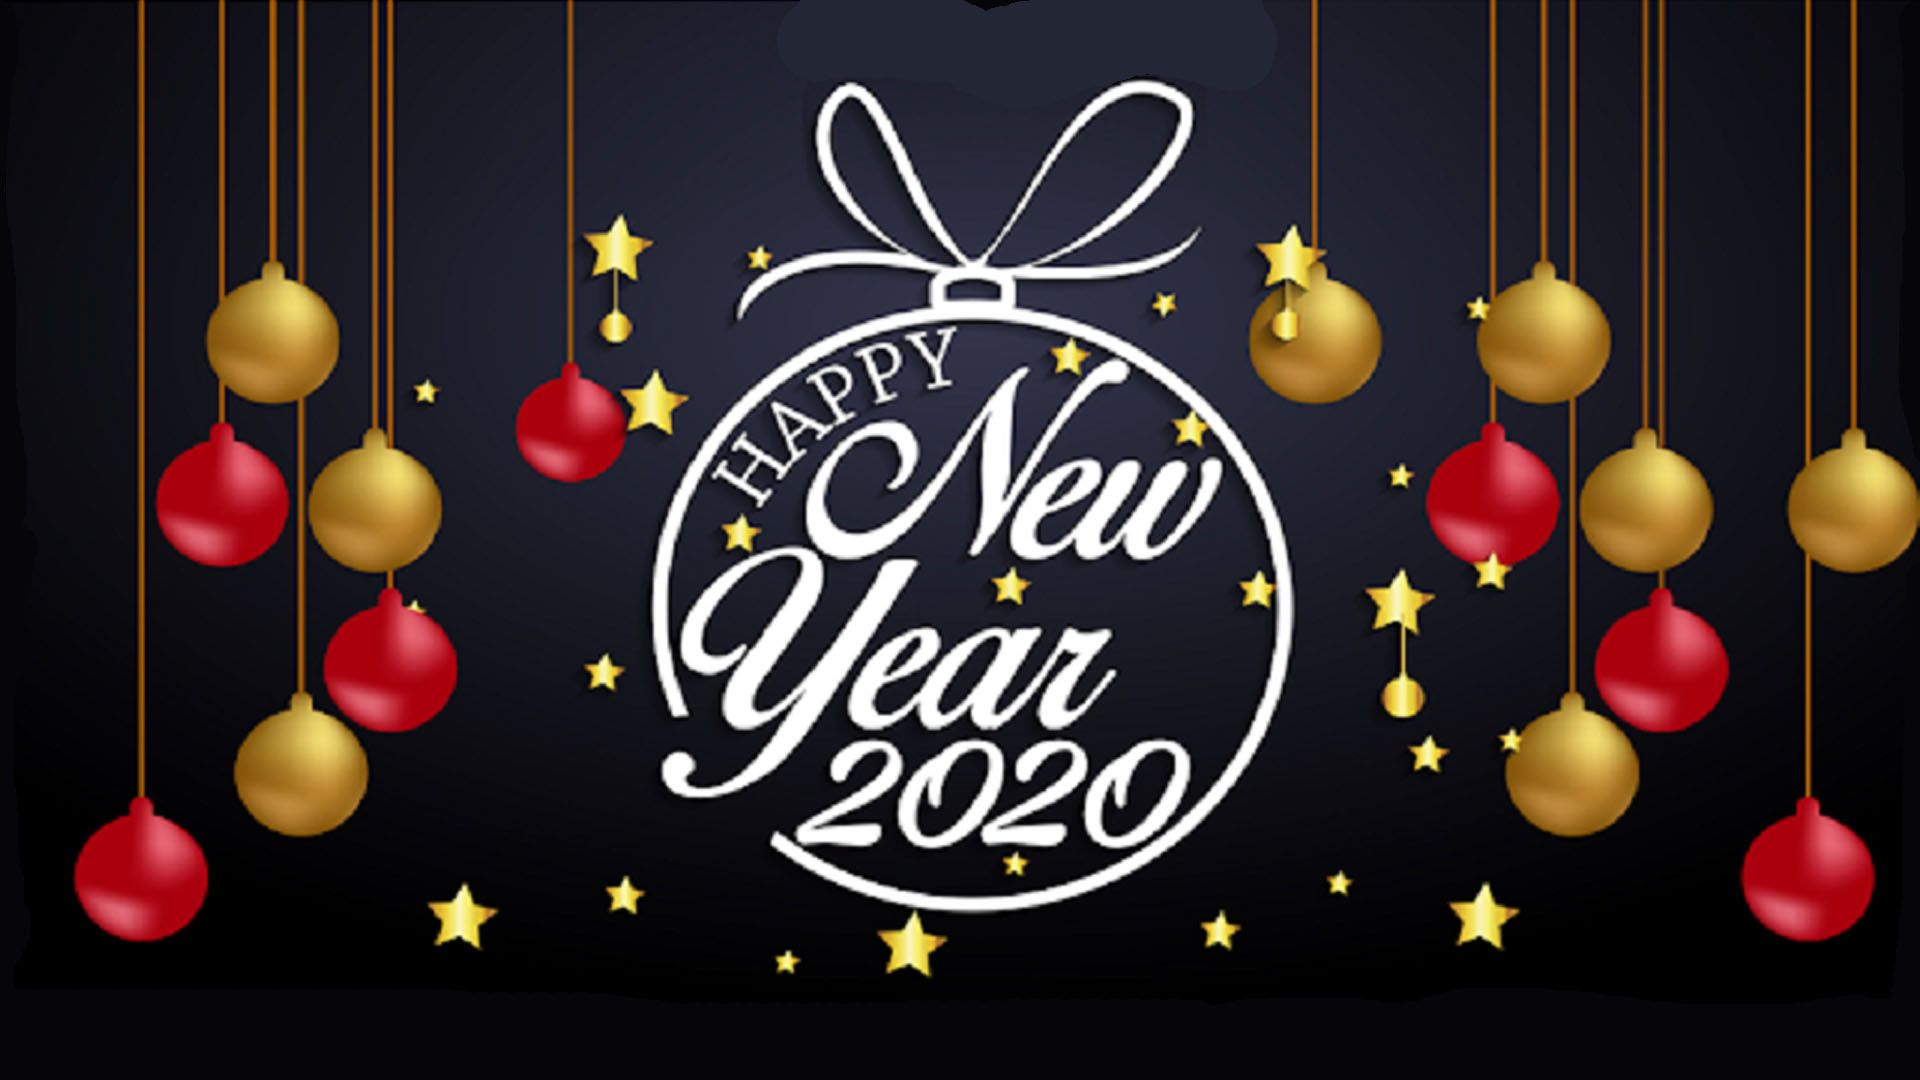 Happy New Year 2020 wallpaper image